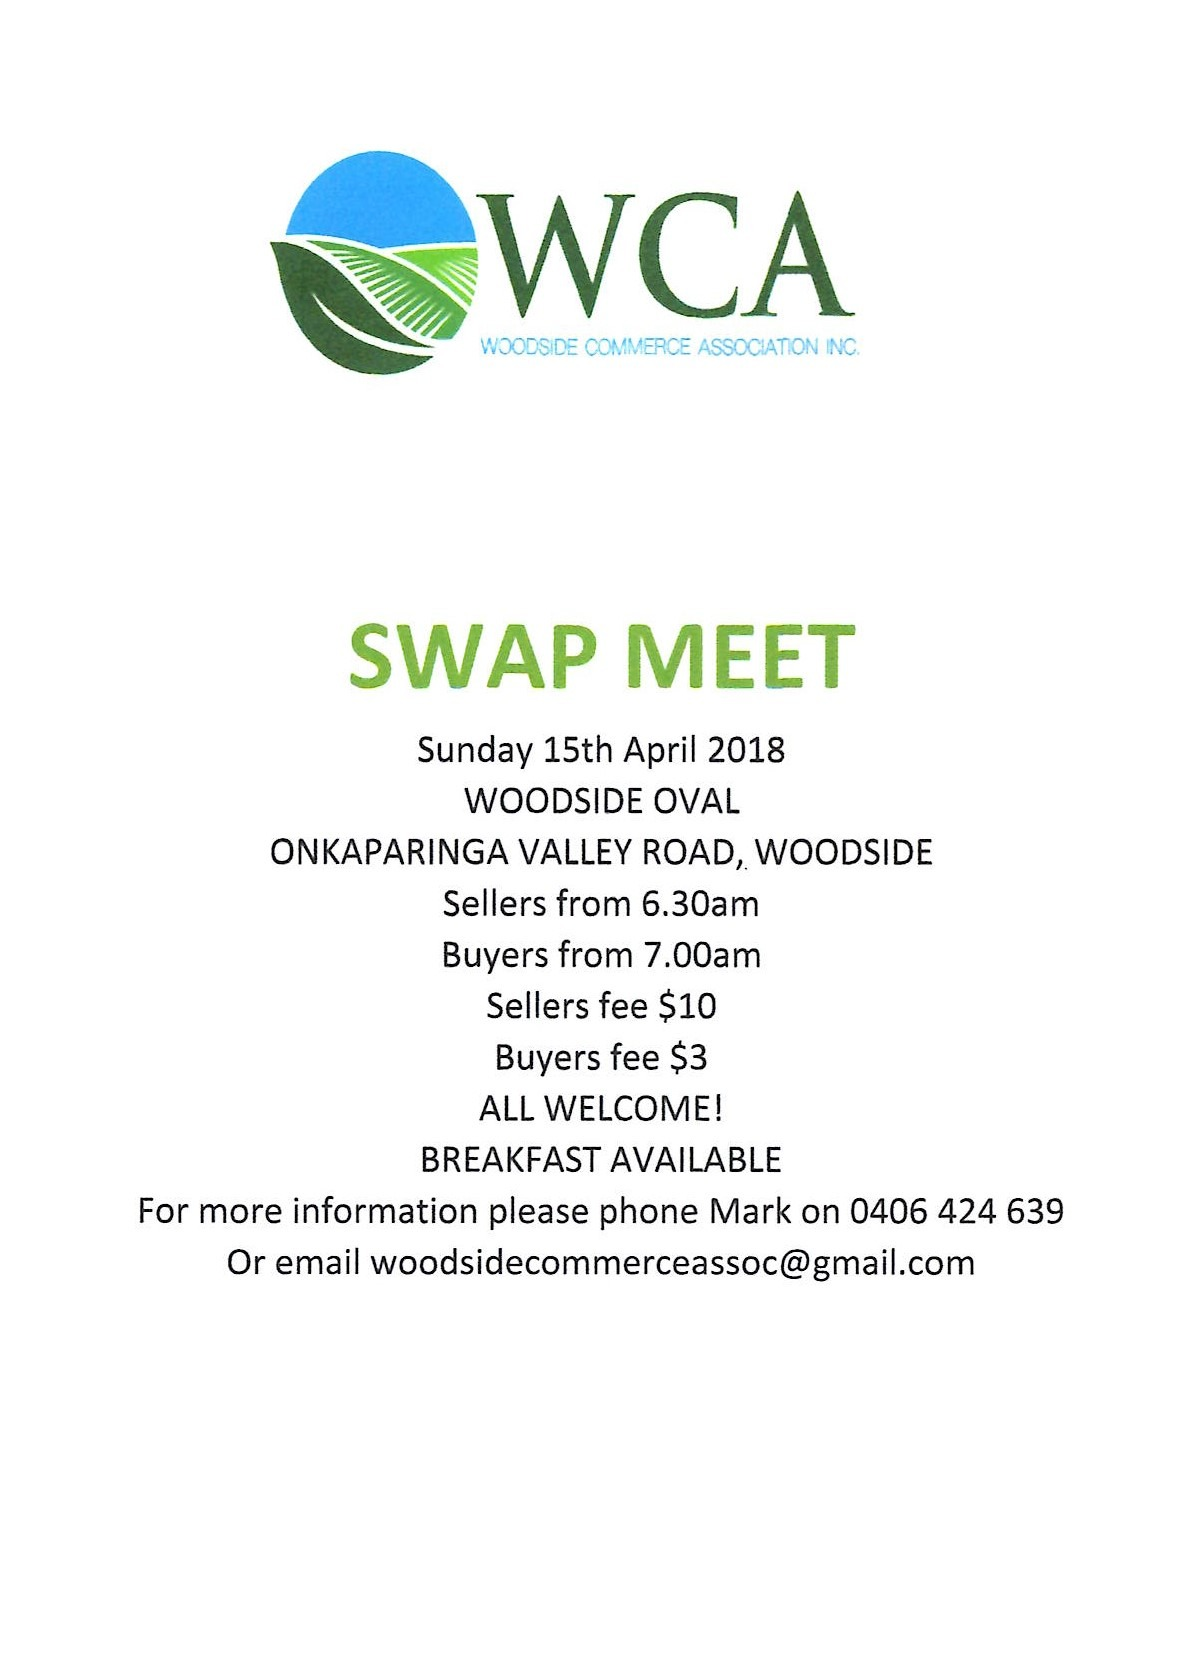 Woodside Buy, Sell and Swap Meet 15th April 2018